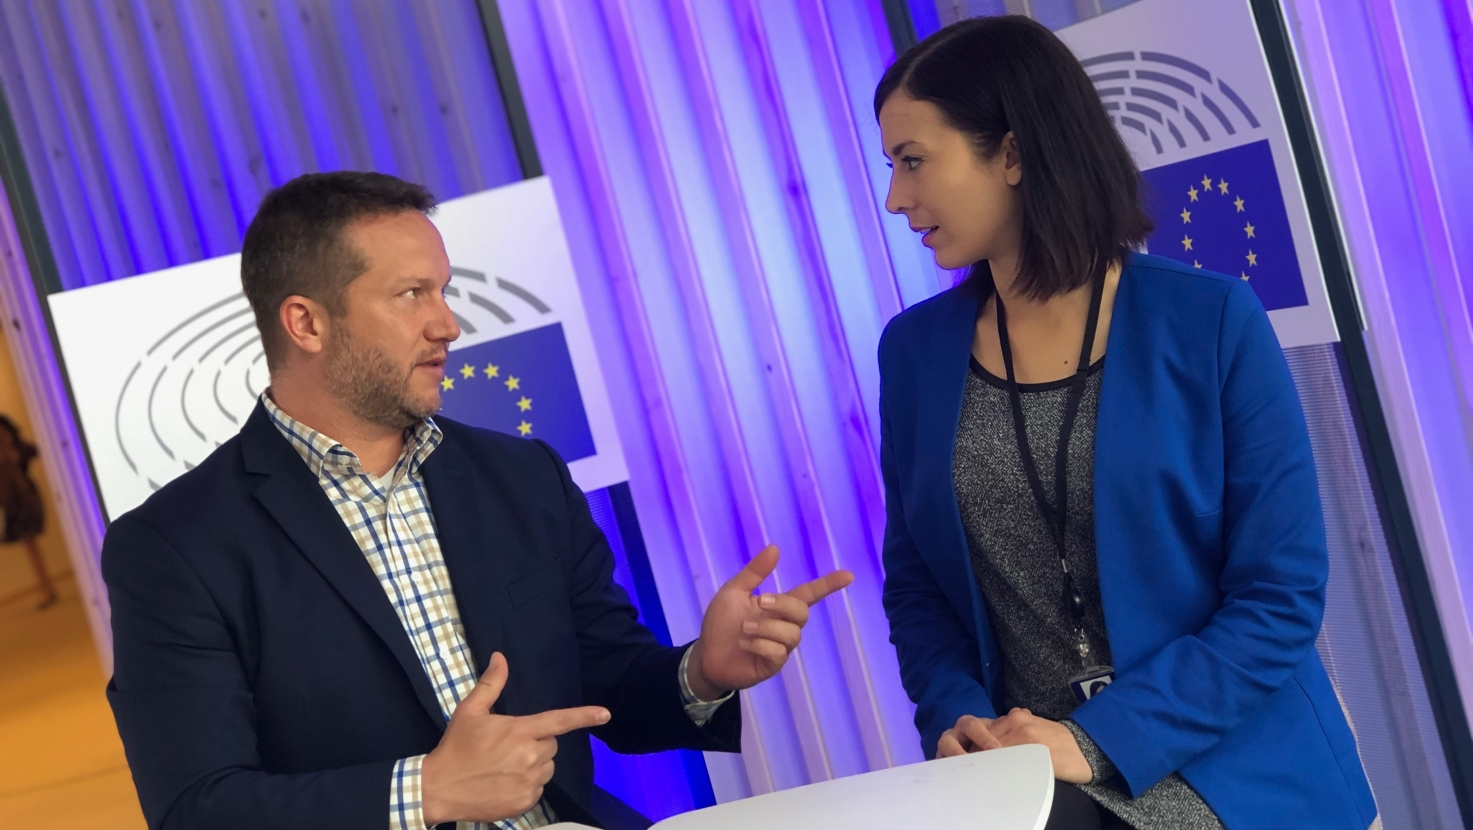 MSZP and Momentum Call MEPs from Fidesz' Opposition to Cooperate